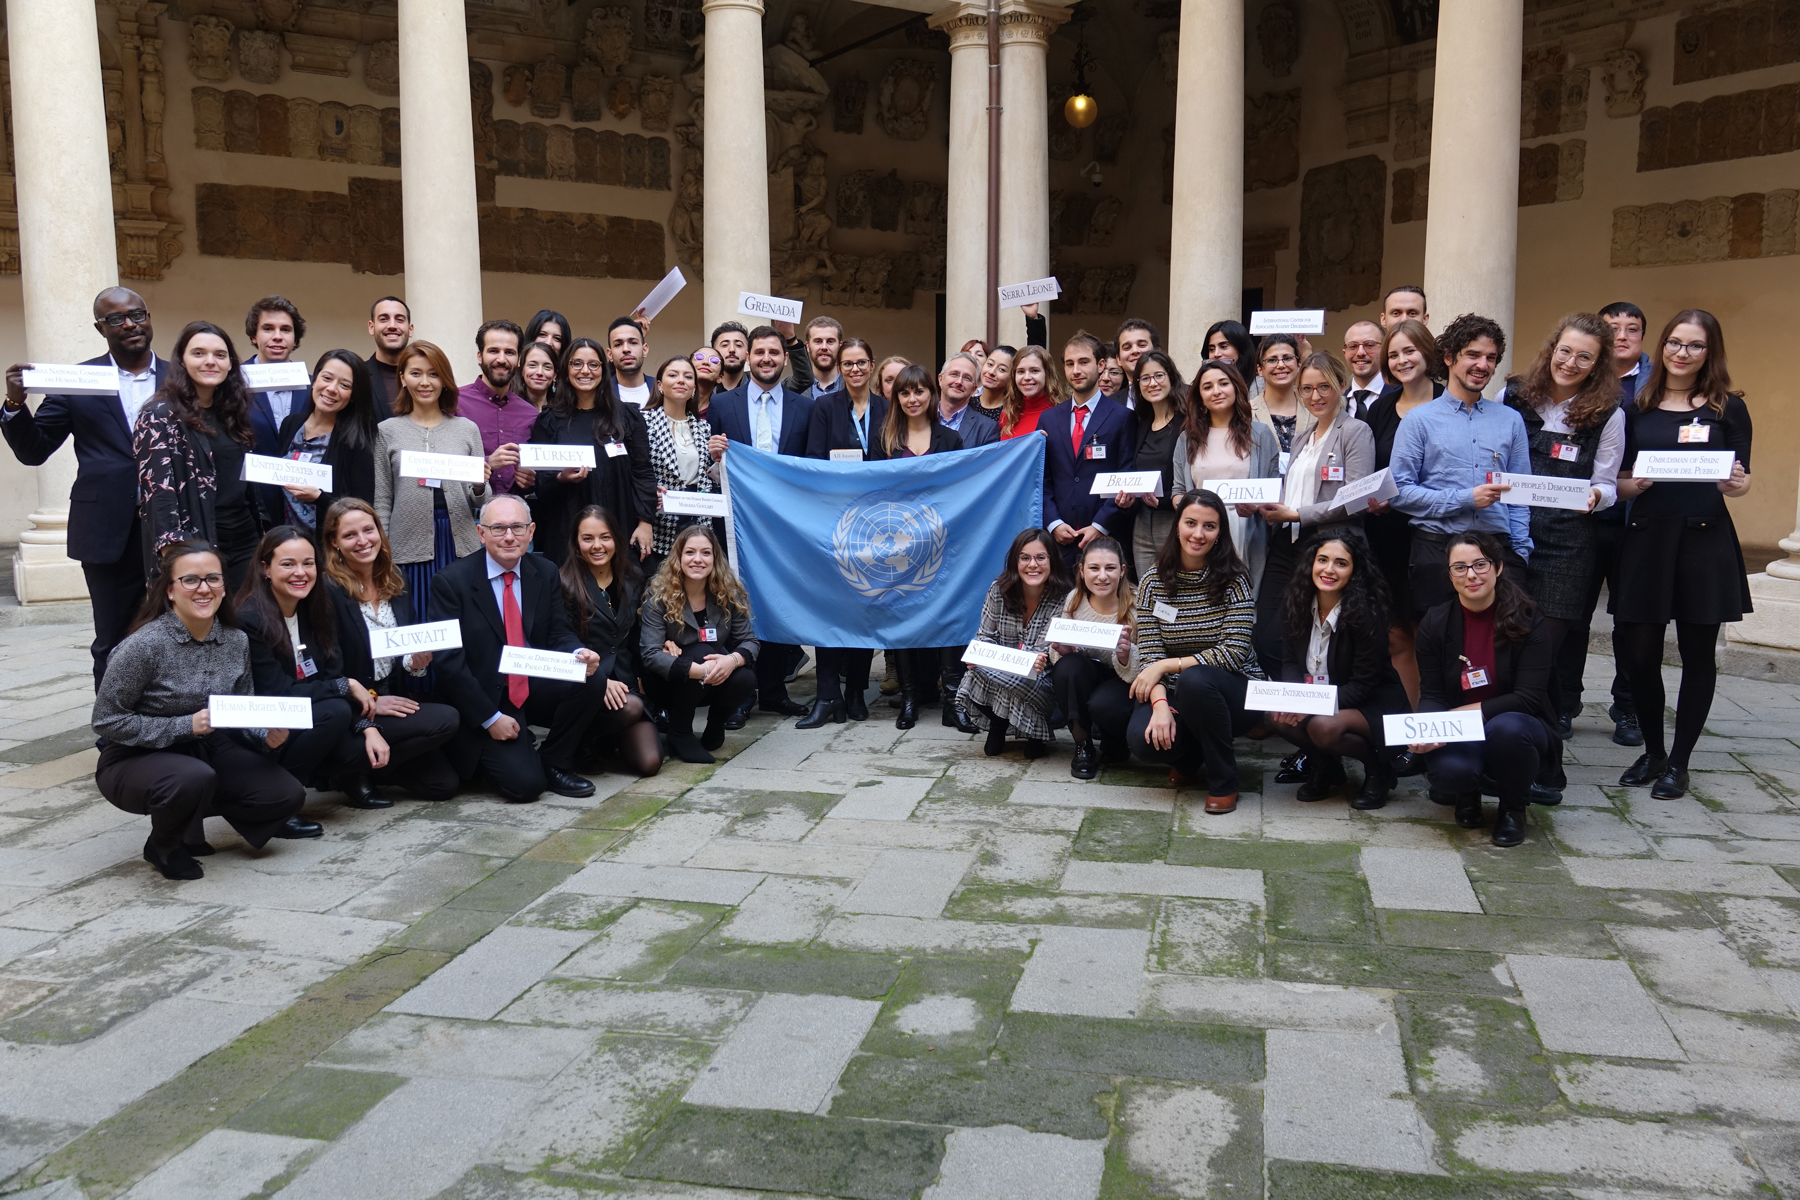 Photo of the final phase of the Padova Model UPR 2019 which took place on 27-29 November